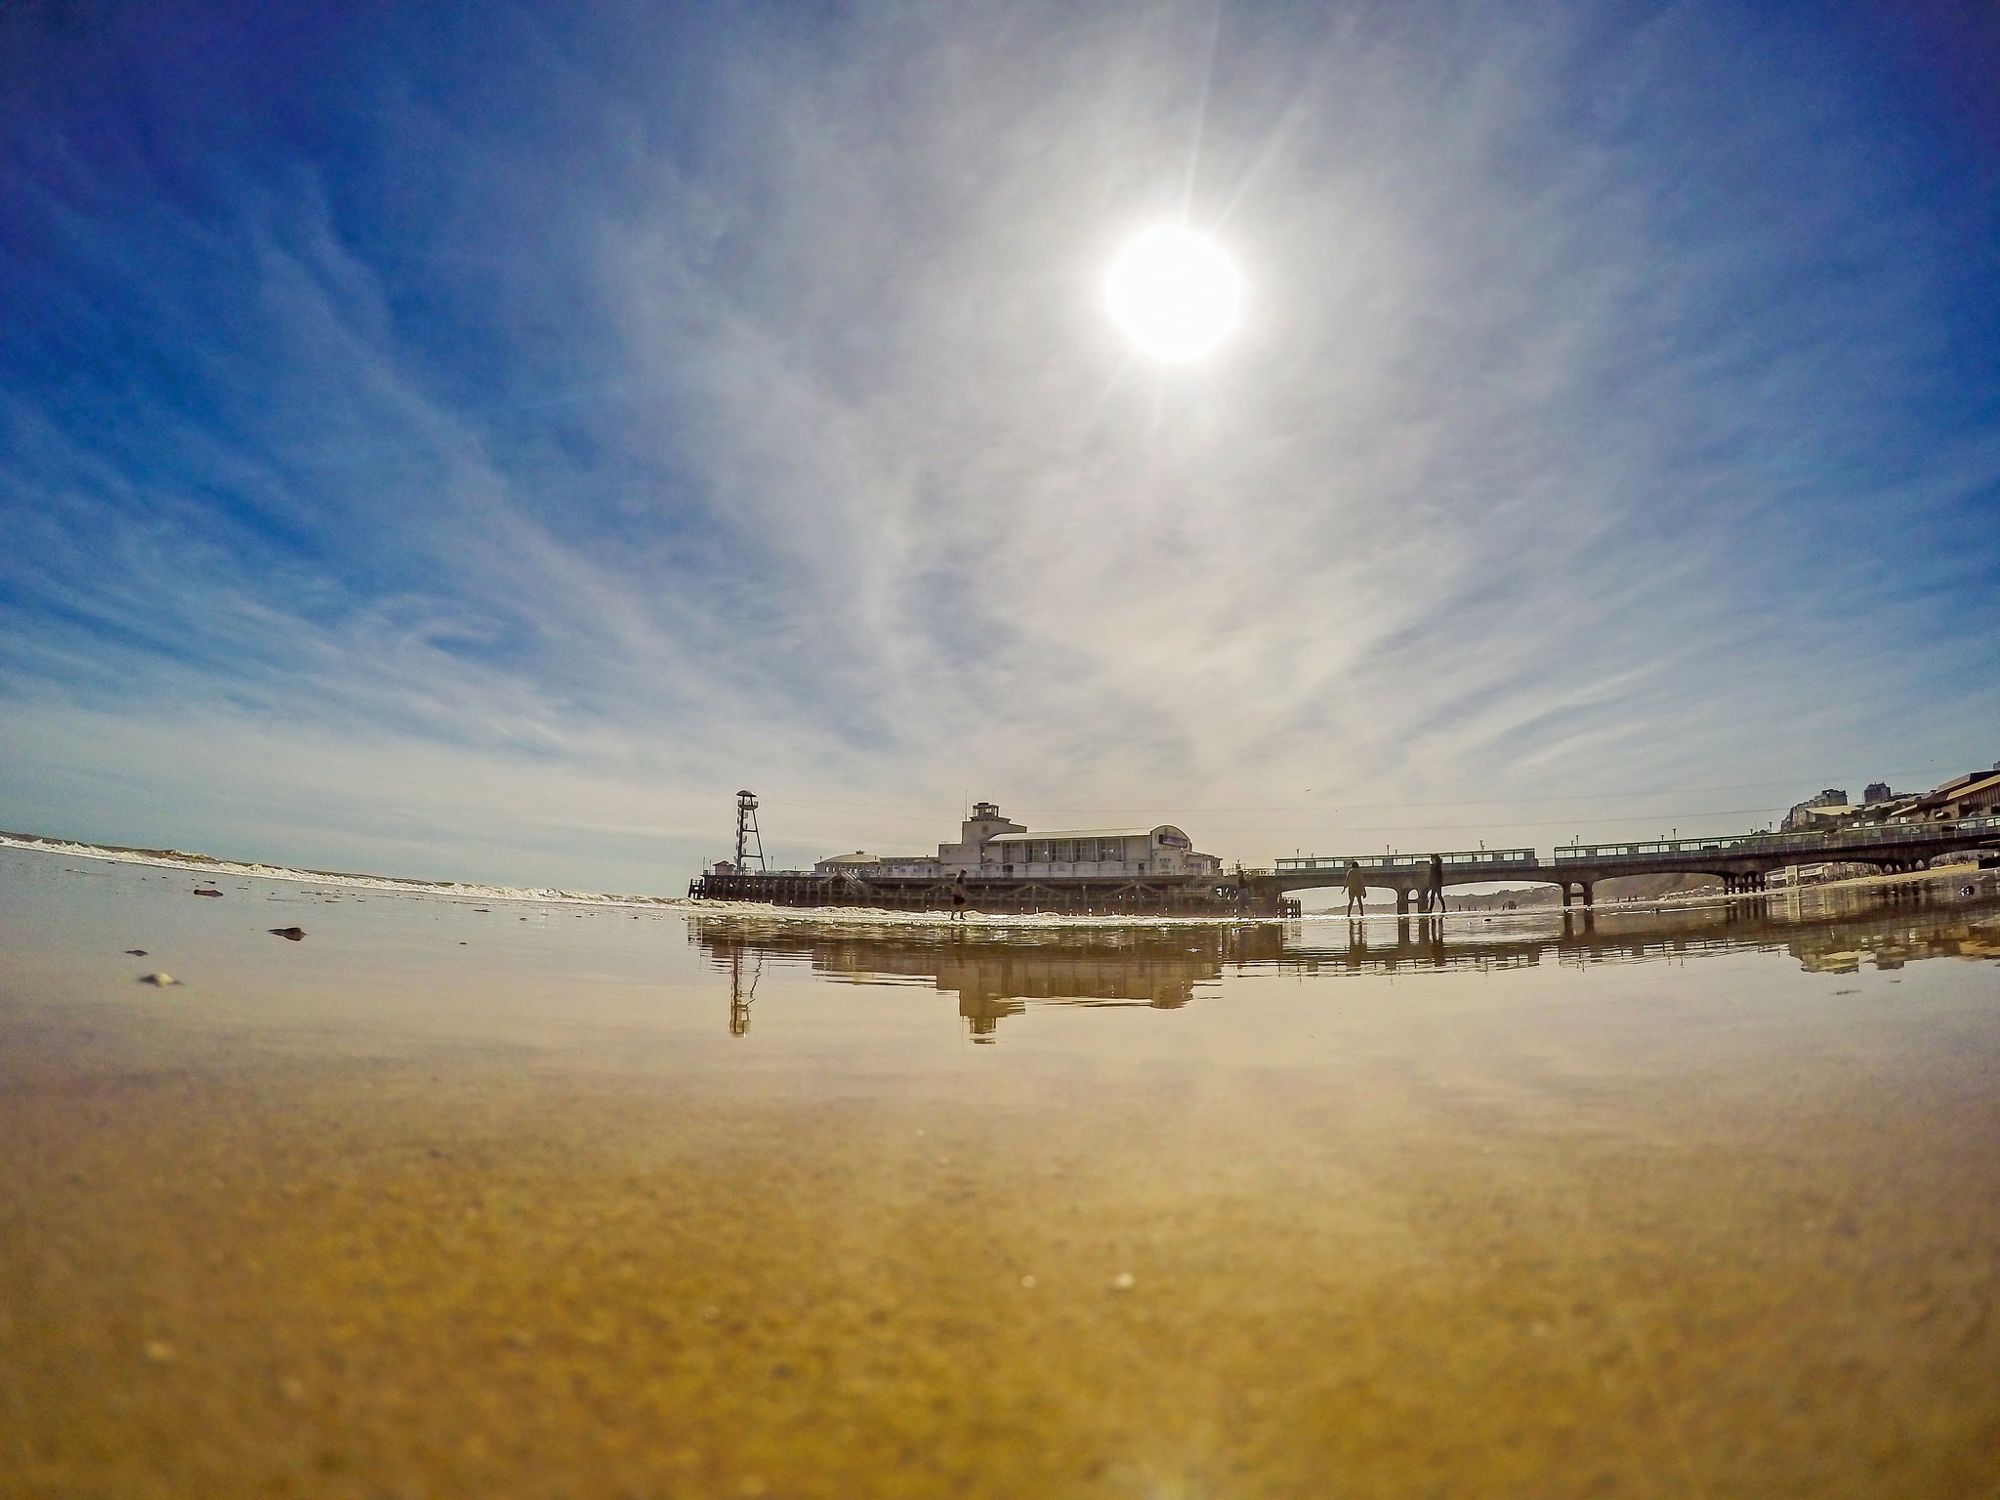 Best Hotels, B&Bs & Self-Catering in Bournemouth & Poole